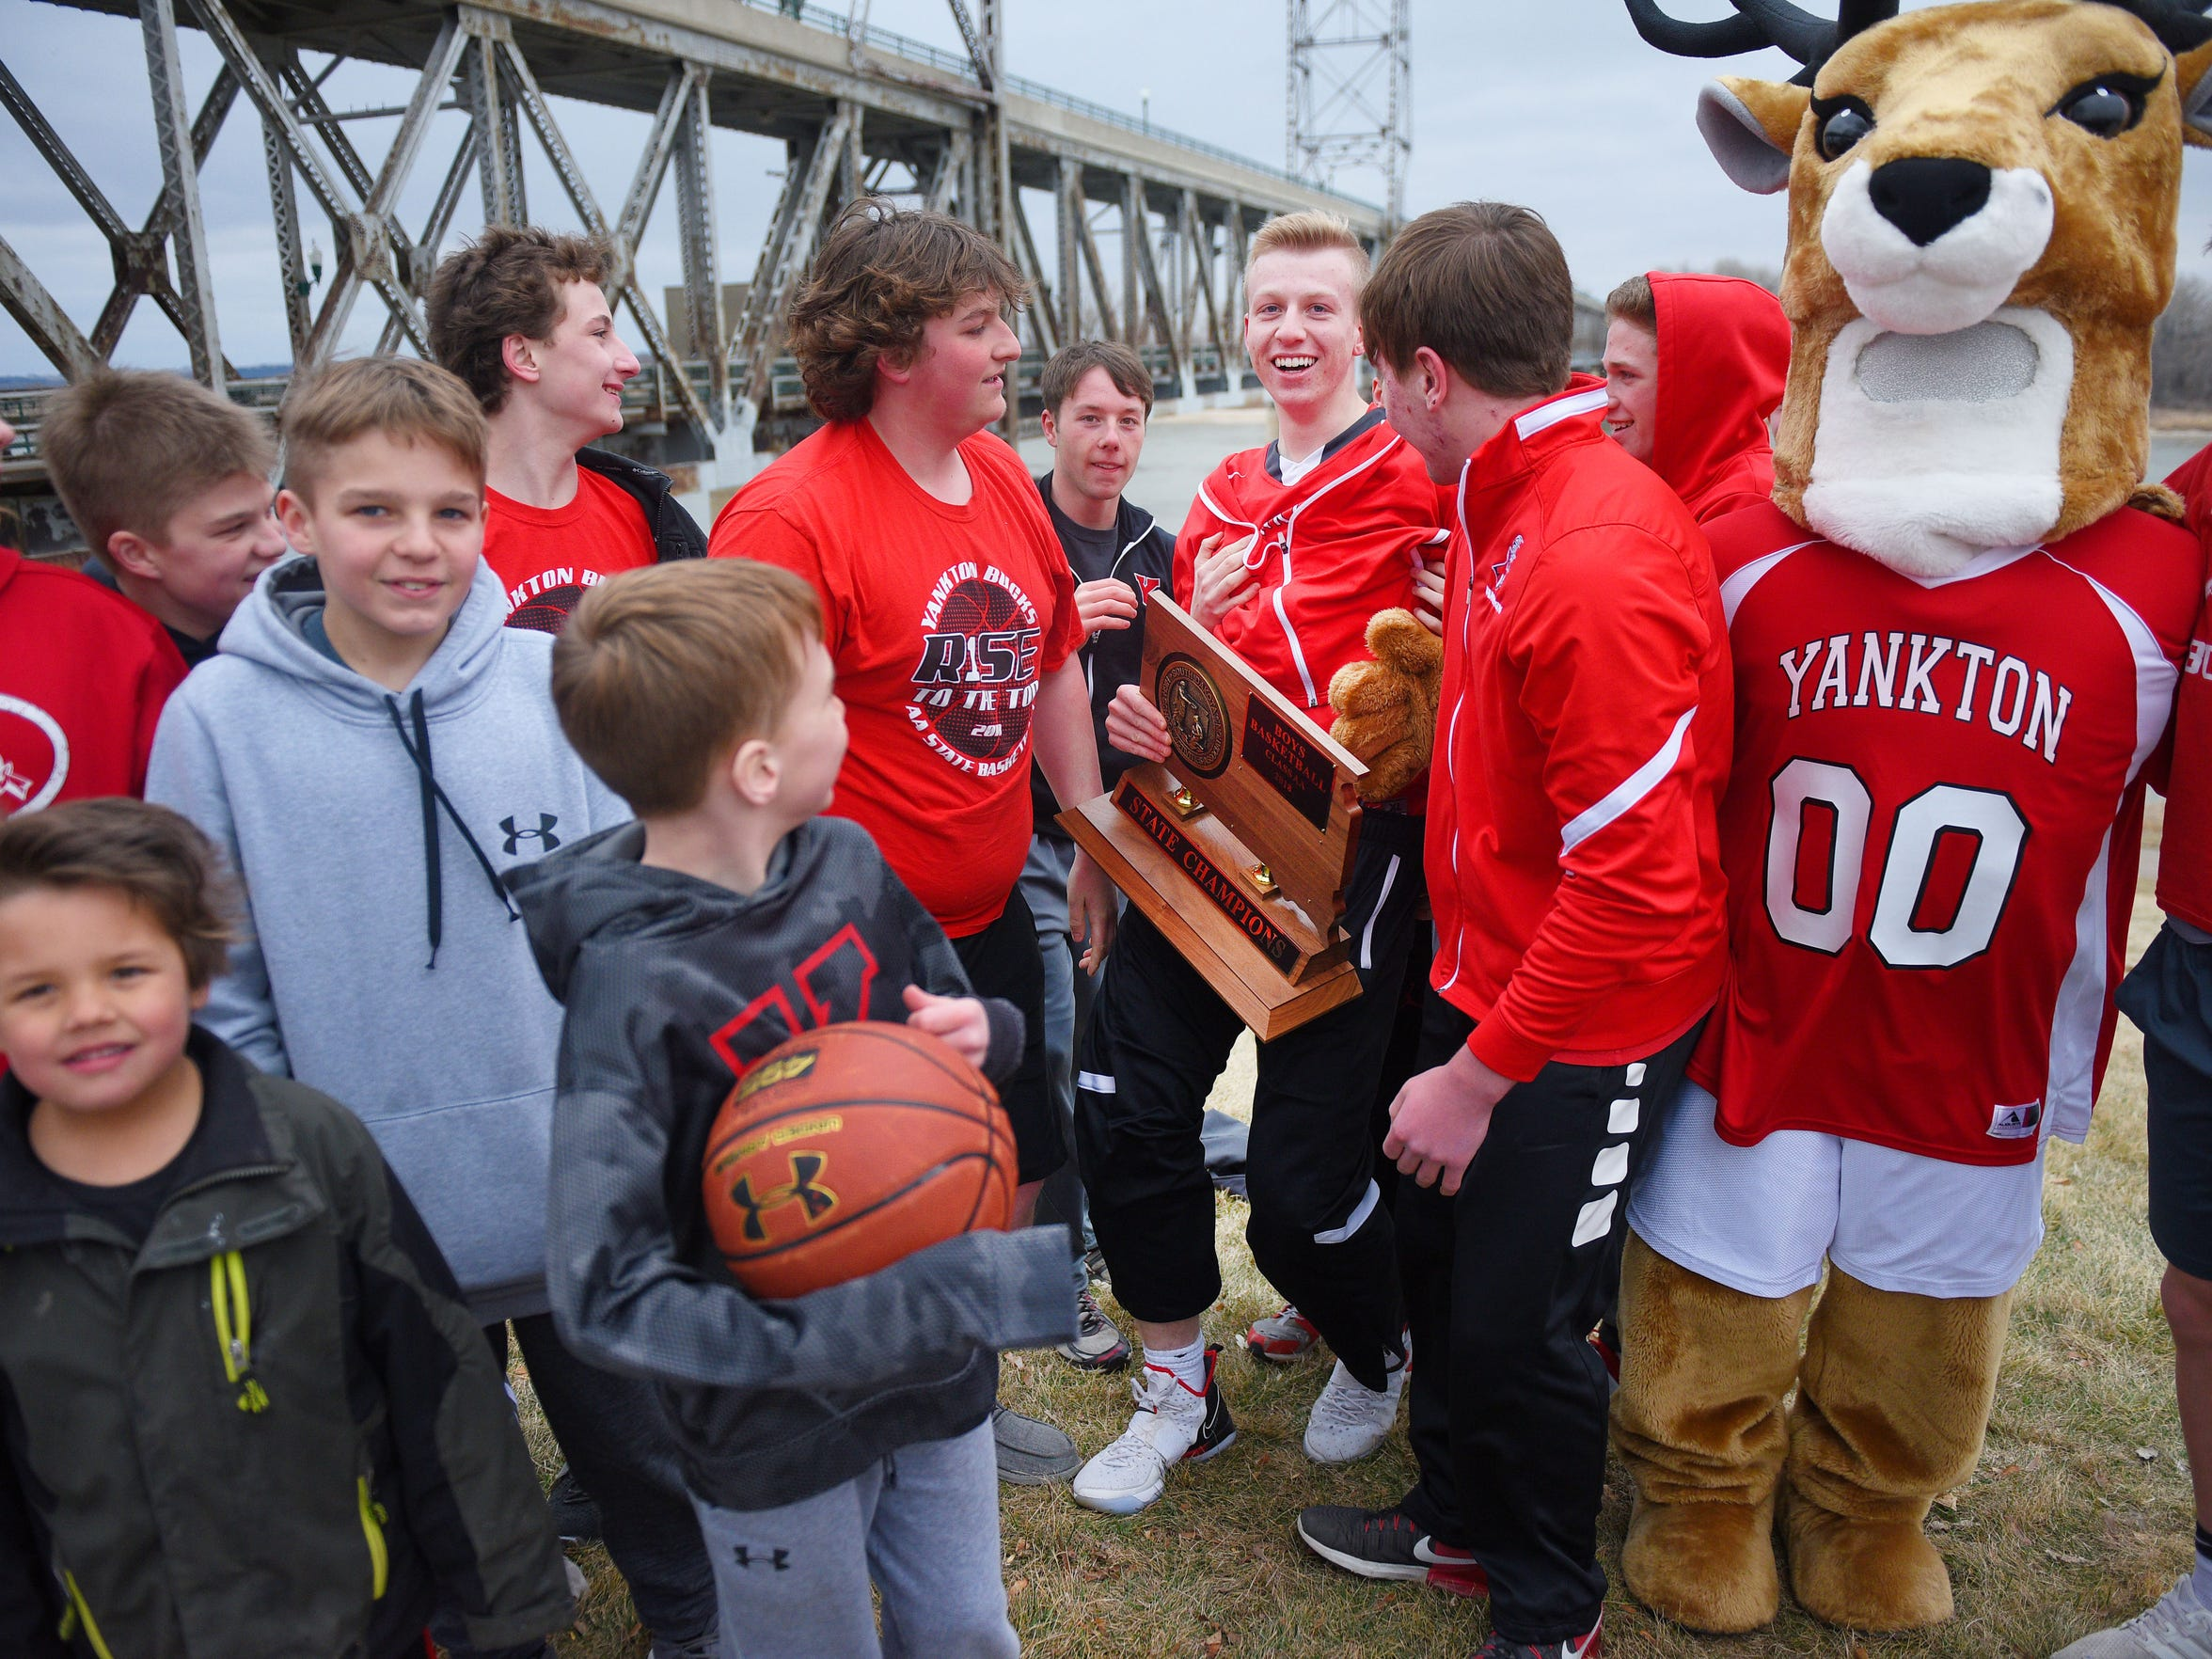 Yankton freshman Matthew Mors for First Five, Wednesday, March 28, at the Meridian Highway Bridge in Yankton.